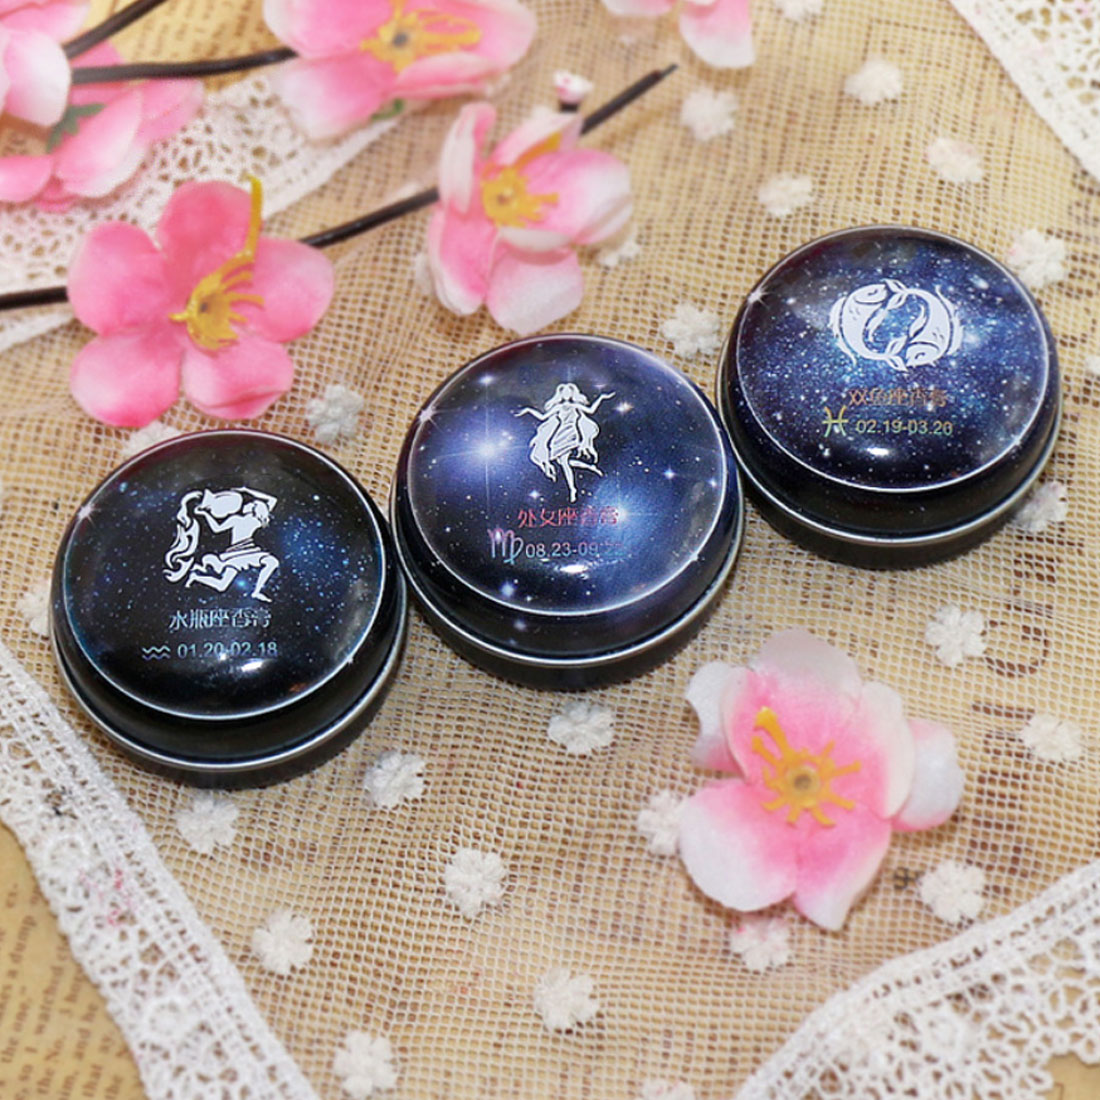 Top Selling 1 PC Unisex Magic Zodiac Fragrance 12 Signs Constellation Deodorant Perfumed Solid Portable Tin Box Balm